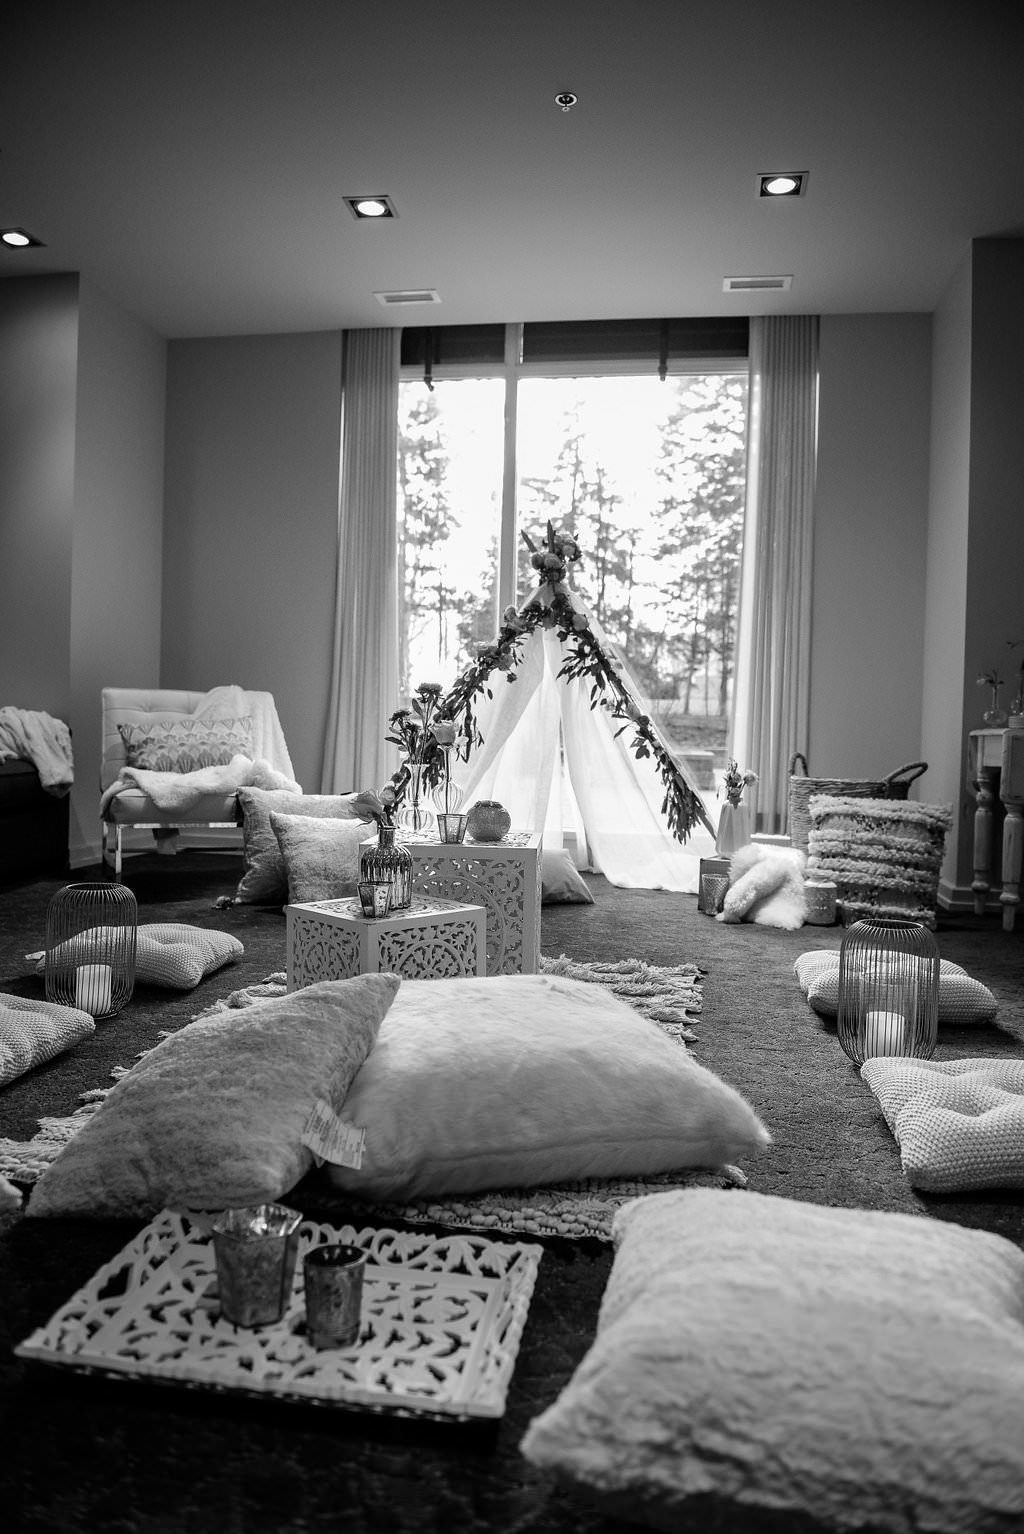 127_MaternityPhoto_Hintonburg_OttawaBabyShower_Boho_PhotosbyEmmah